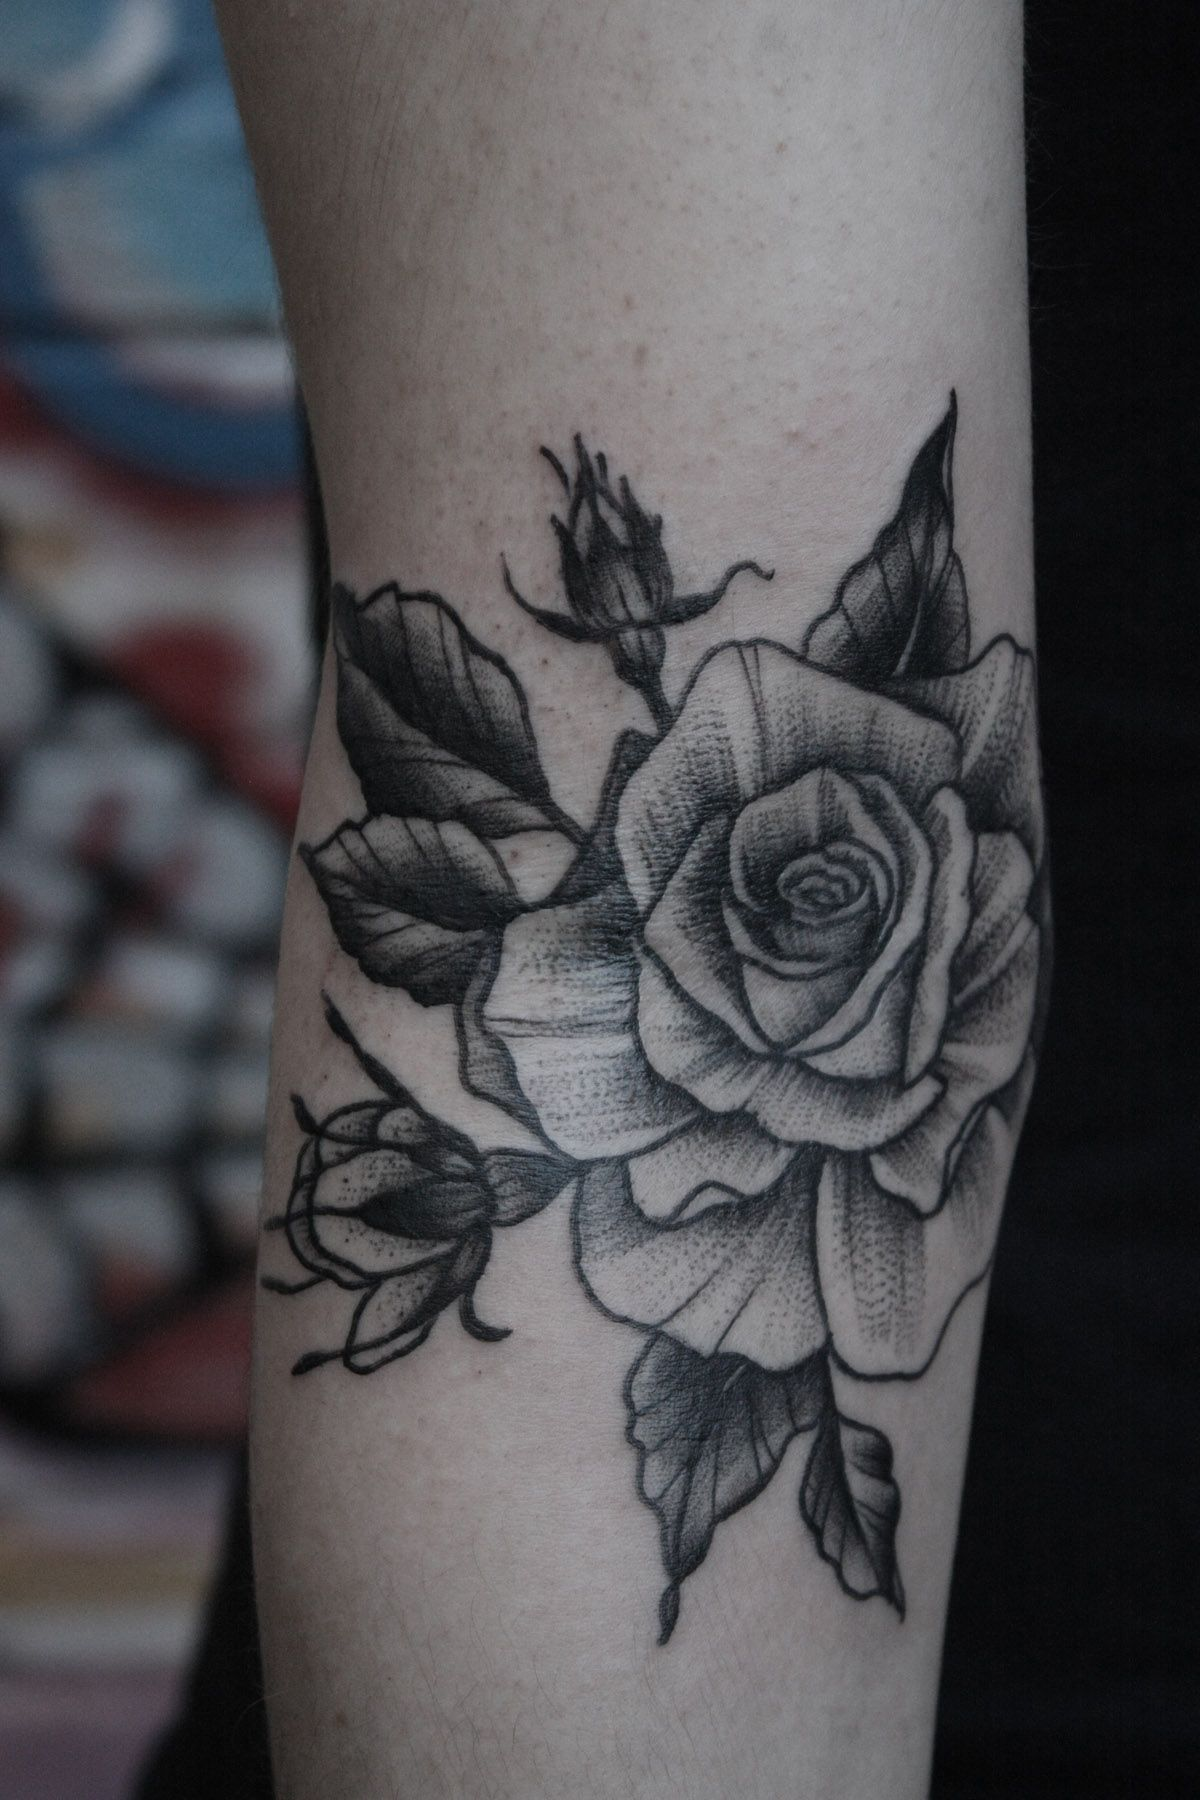 Stippled rose tattoo tumblr ink pinterest tattoos rose stippled rose tattoo tumblr rose tattoos tumblr pin up tattoos tattoo you izmirmasajfo